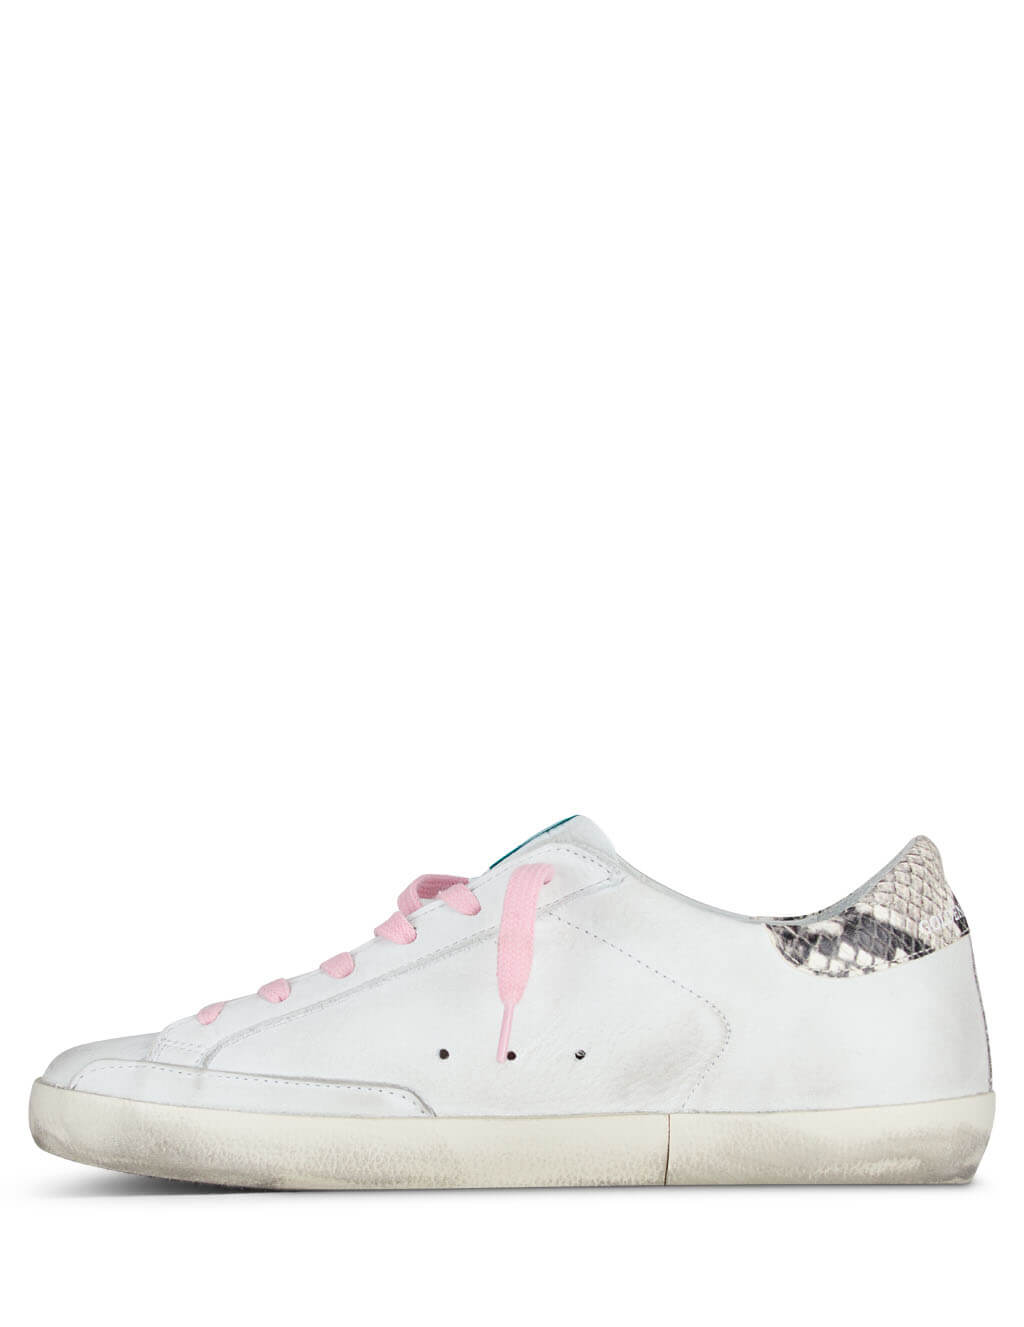 Golden Goose Deluxe Brand Women's Giulio Fashion White Superstar Sneakers G36WS590.V38